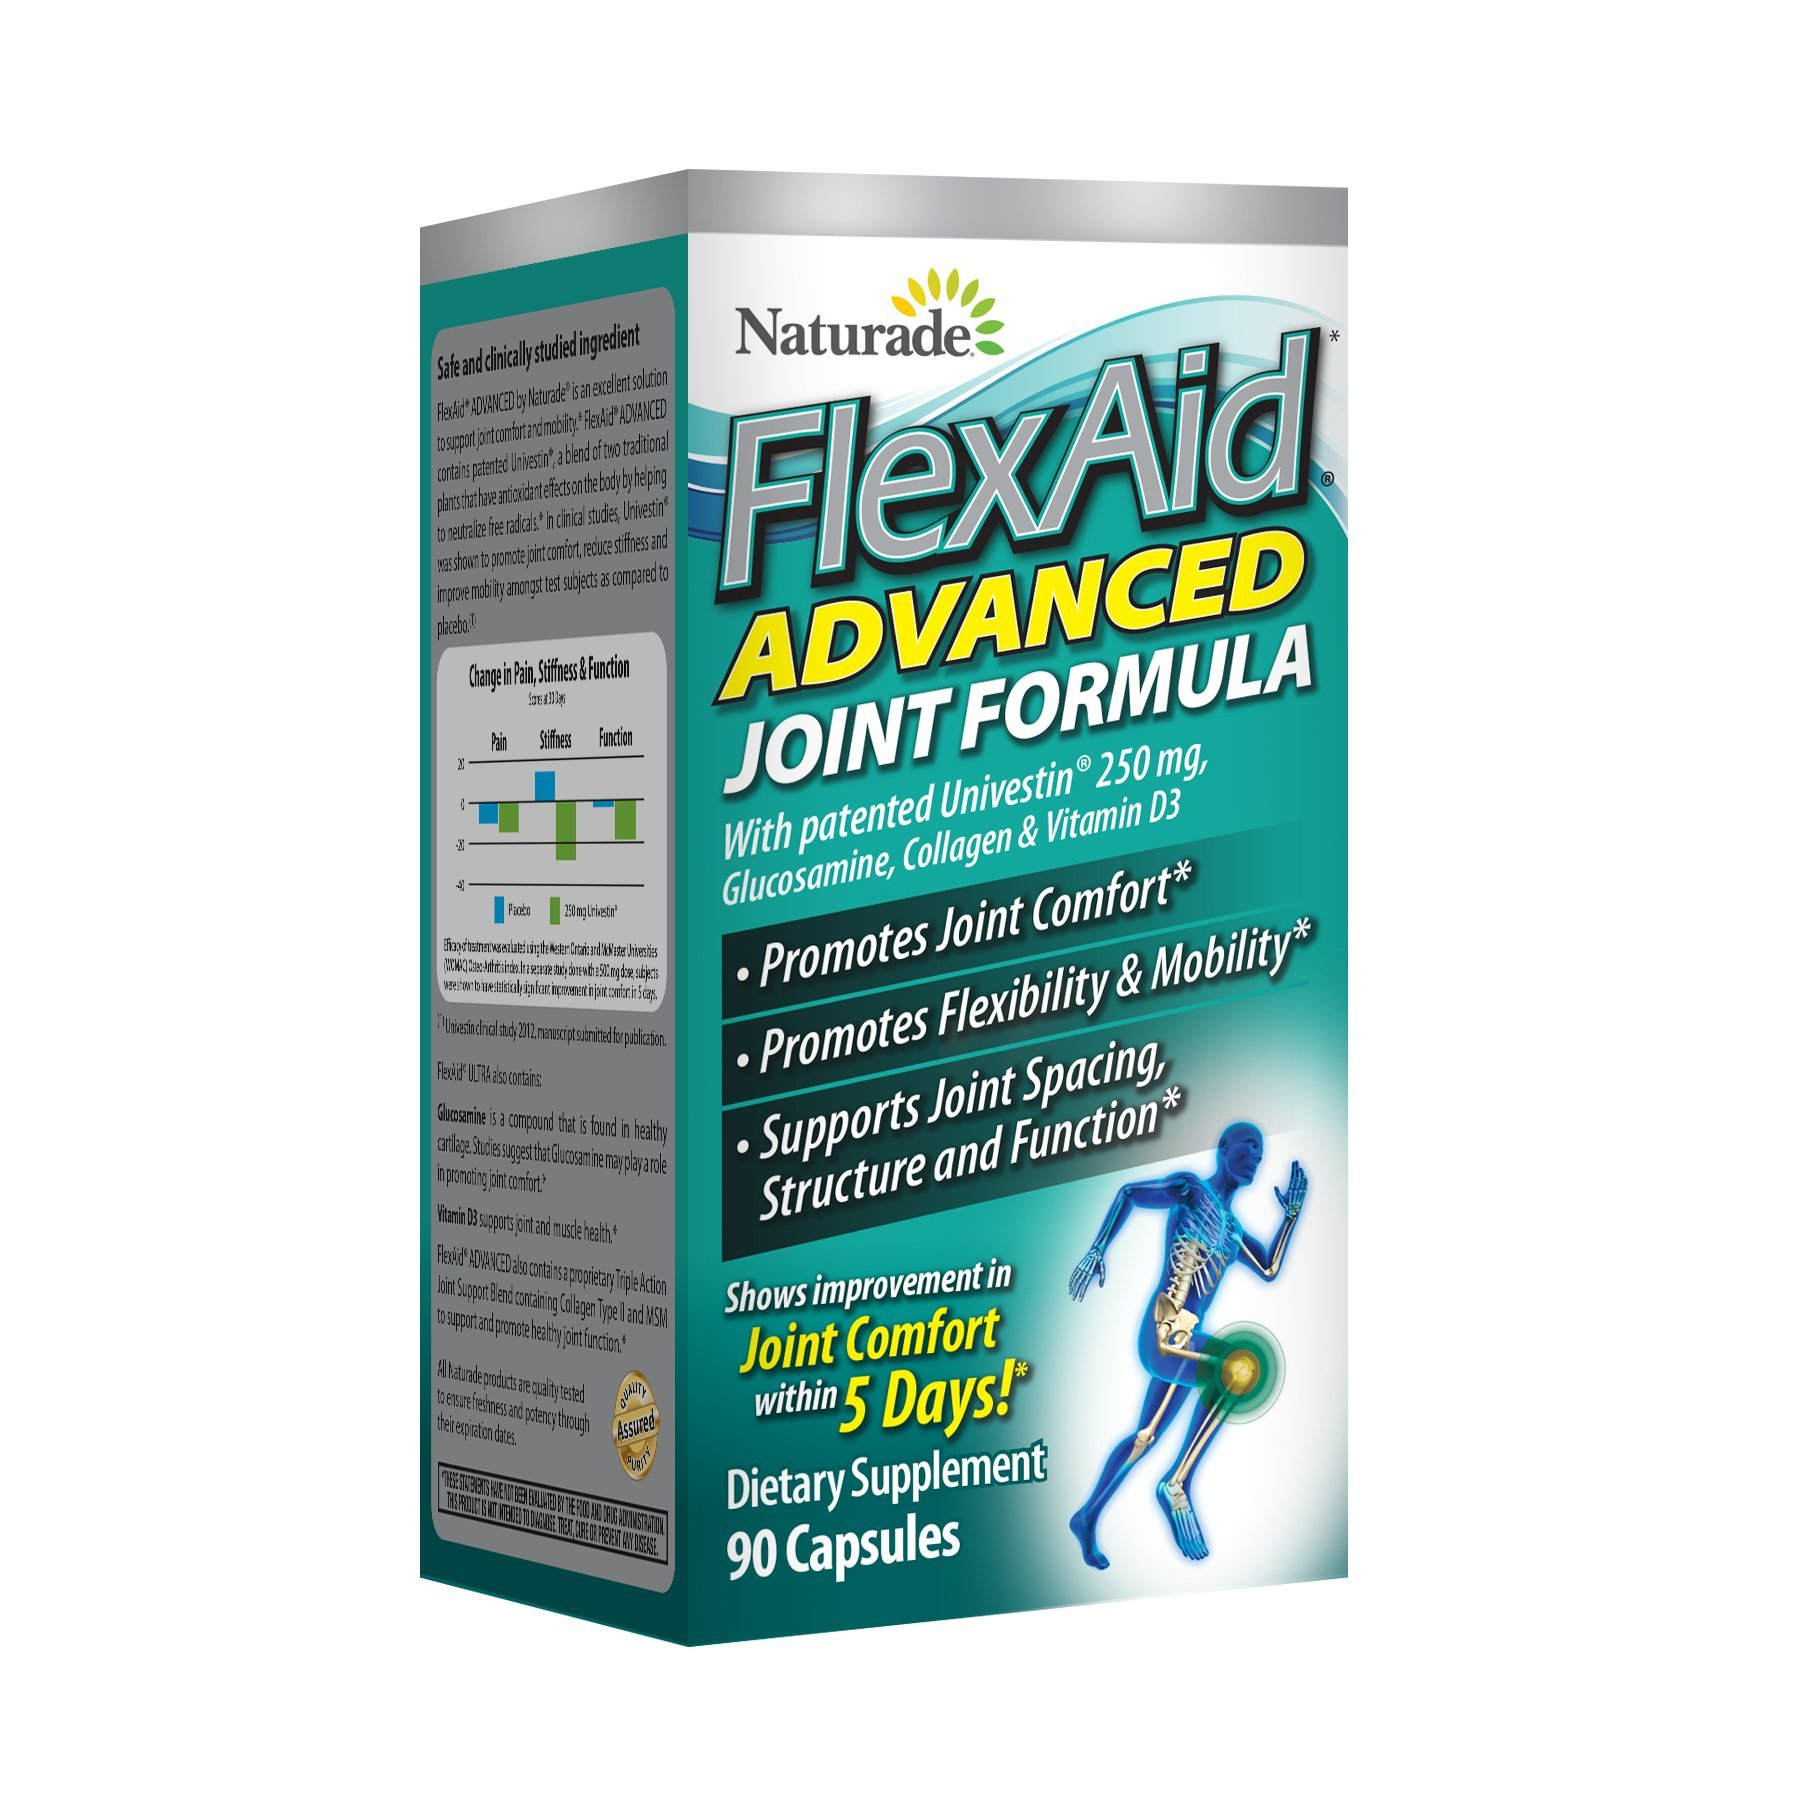 FlexAid draft v12